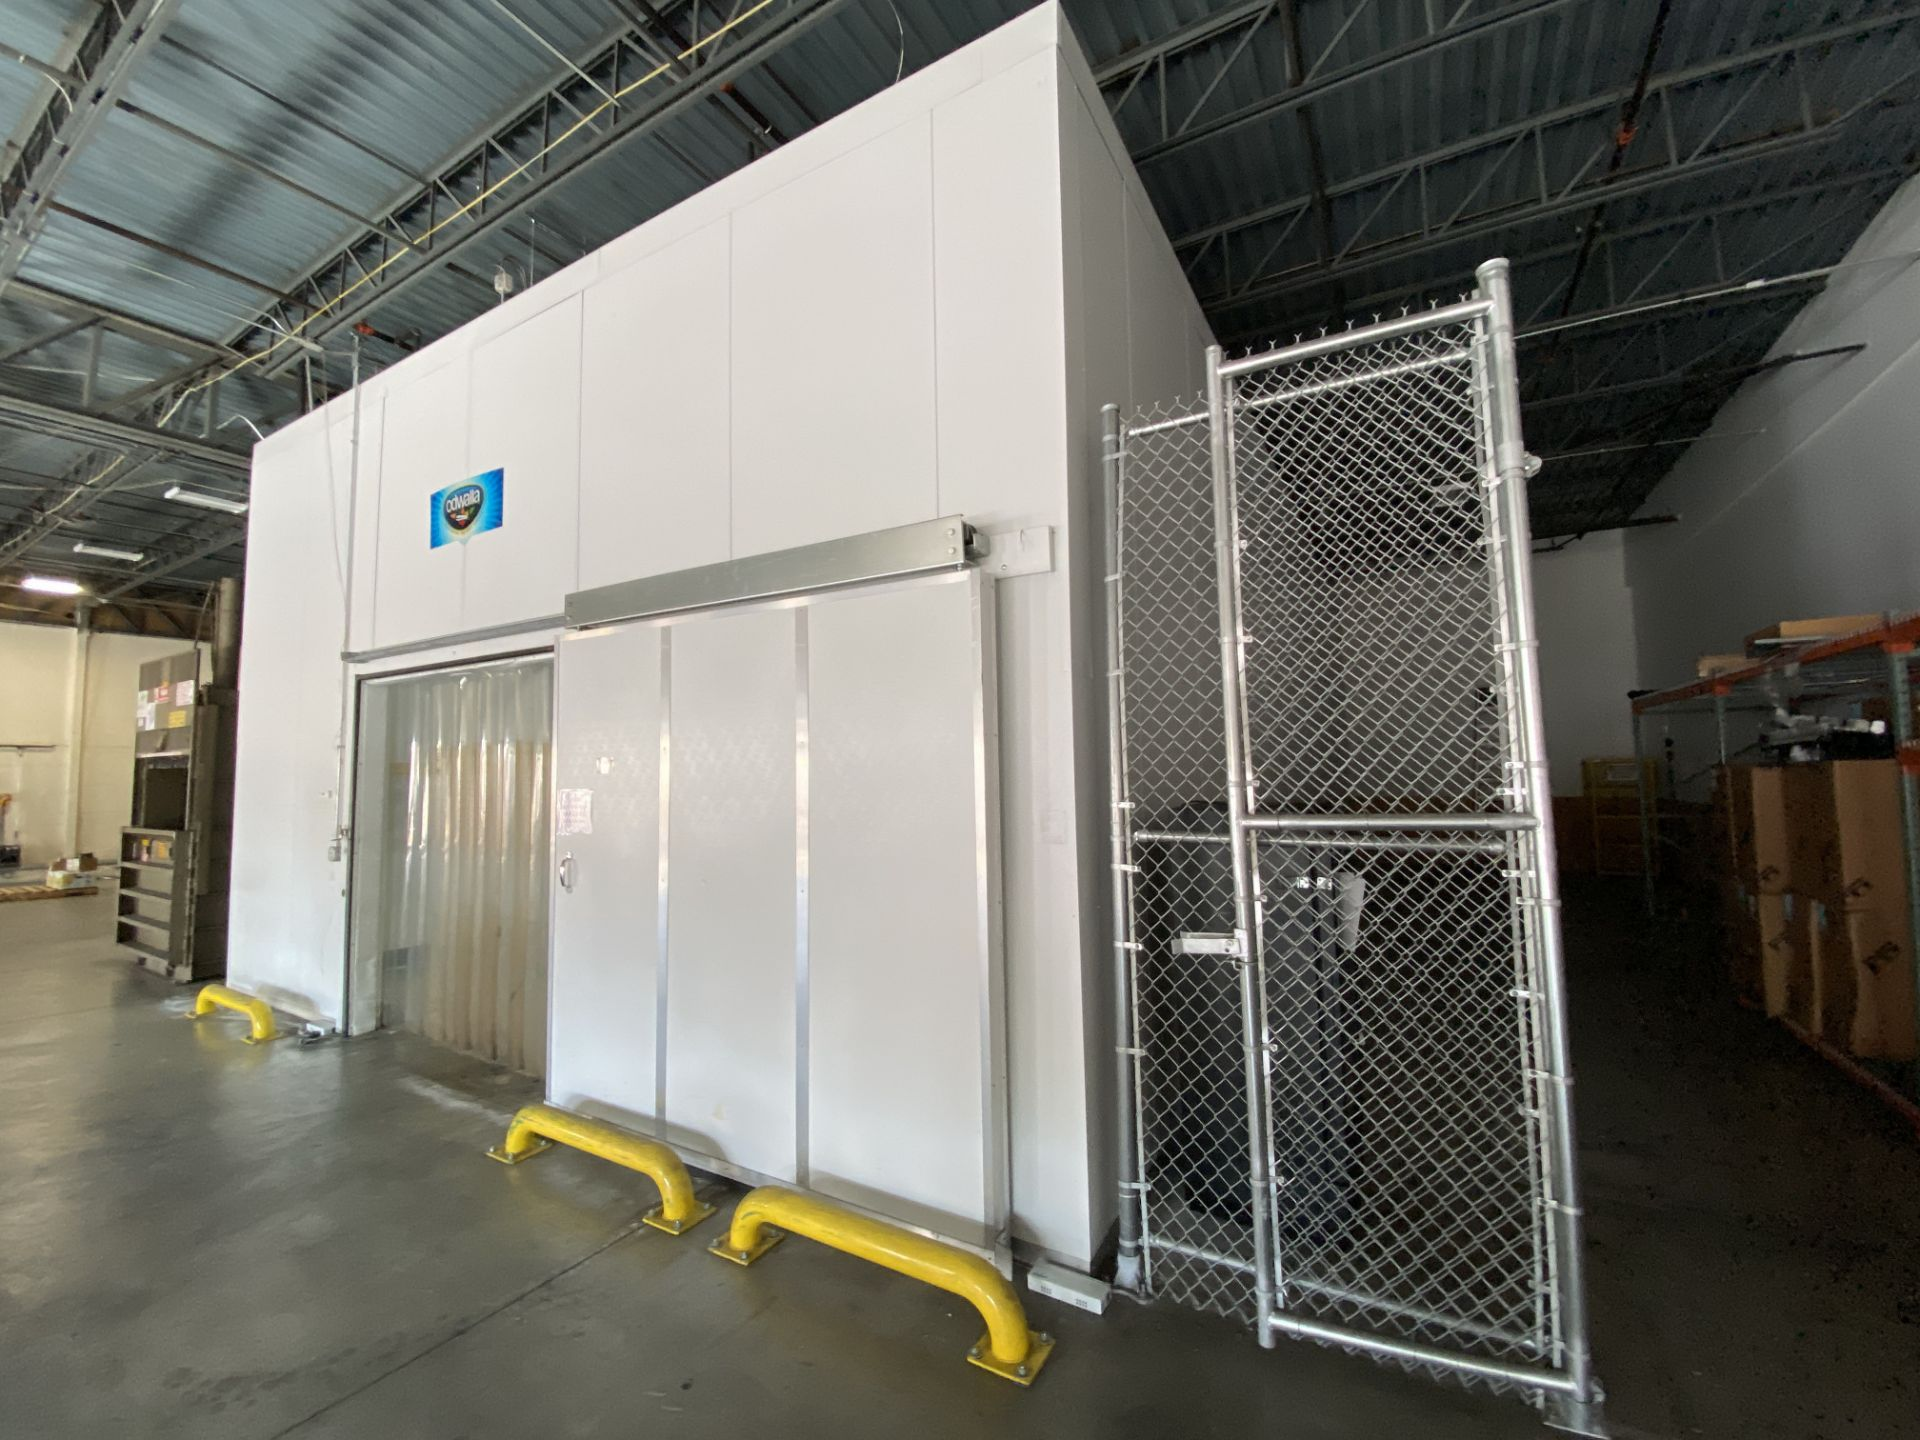 AIP (American Insulated Panel) drive in panel system free standing cooler, 50' X 25' X 18' clear - Image 2 of 8